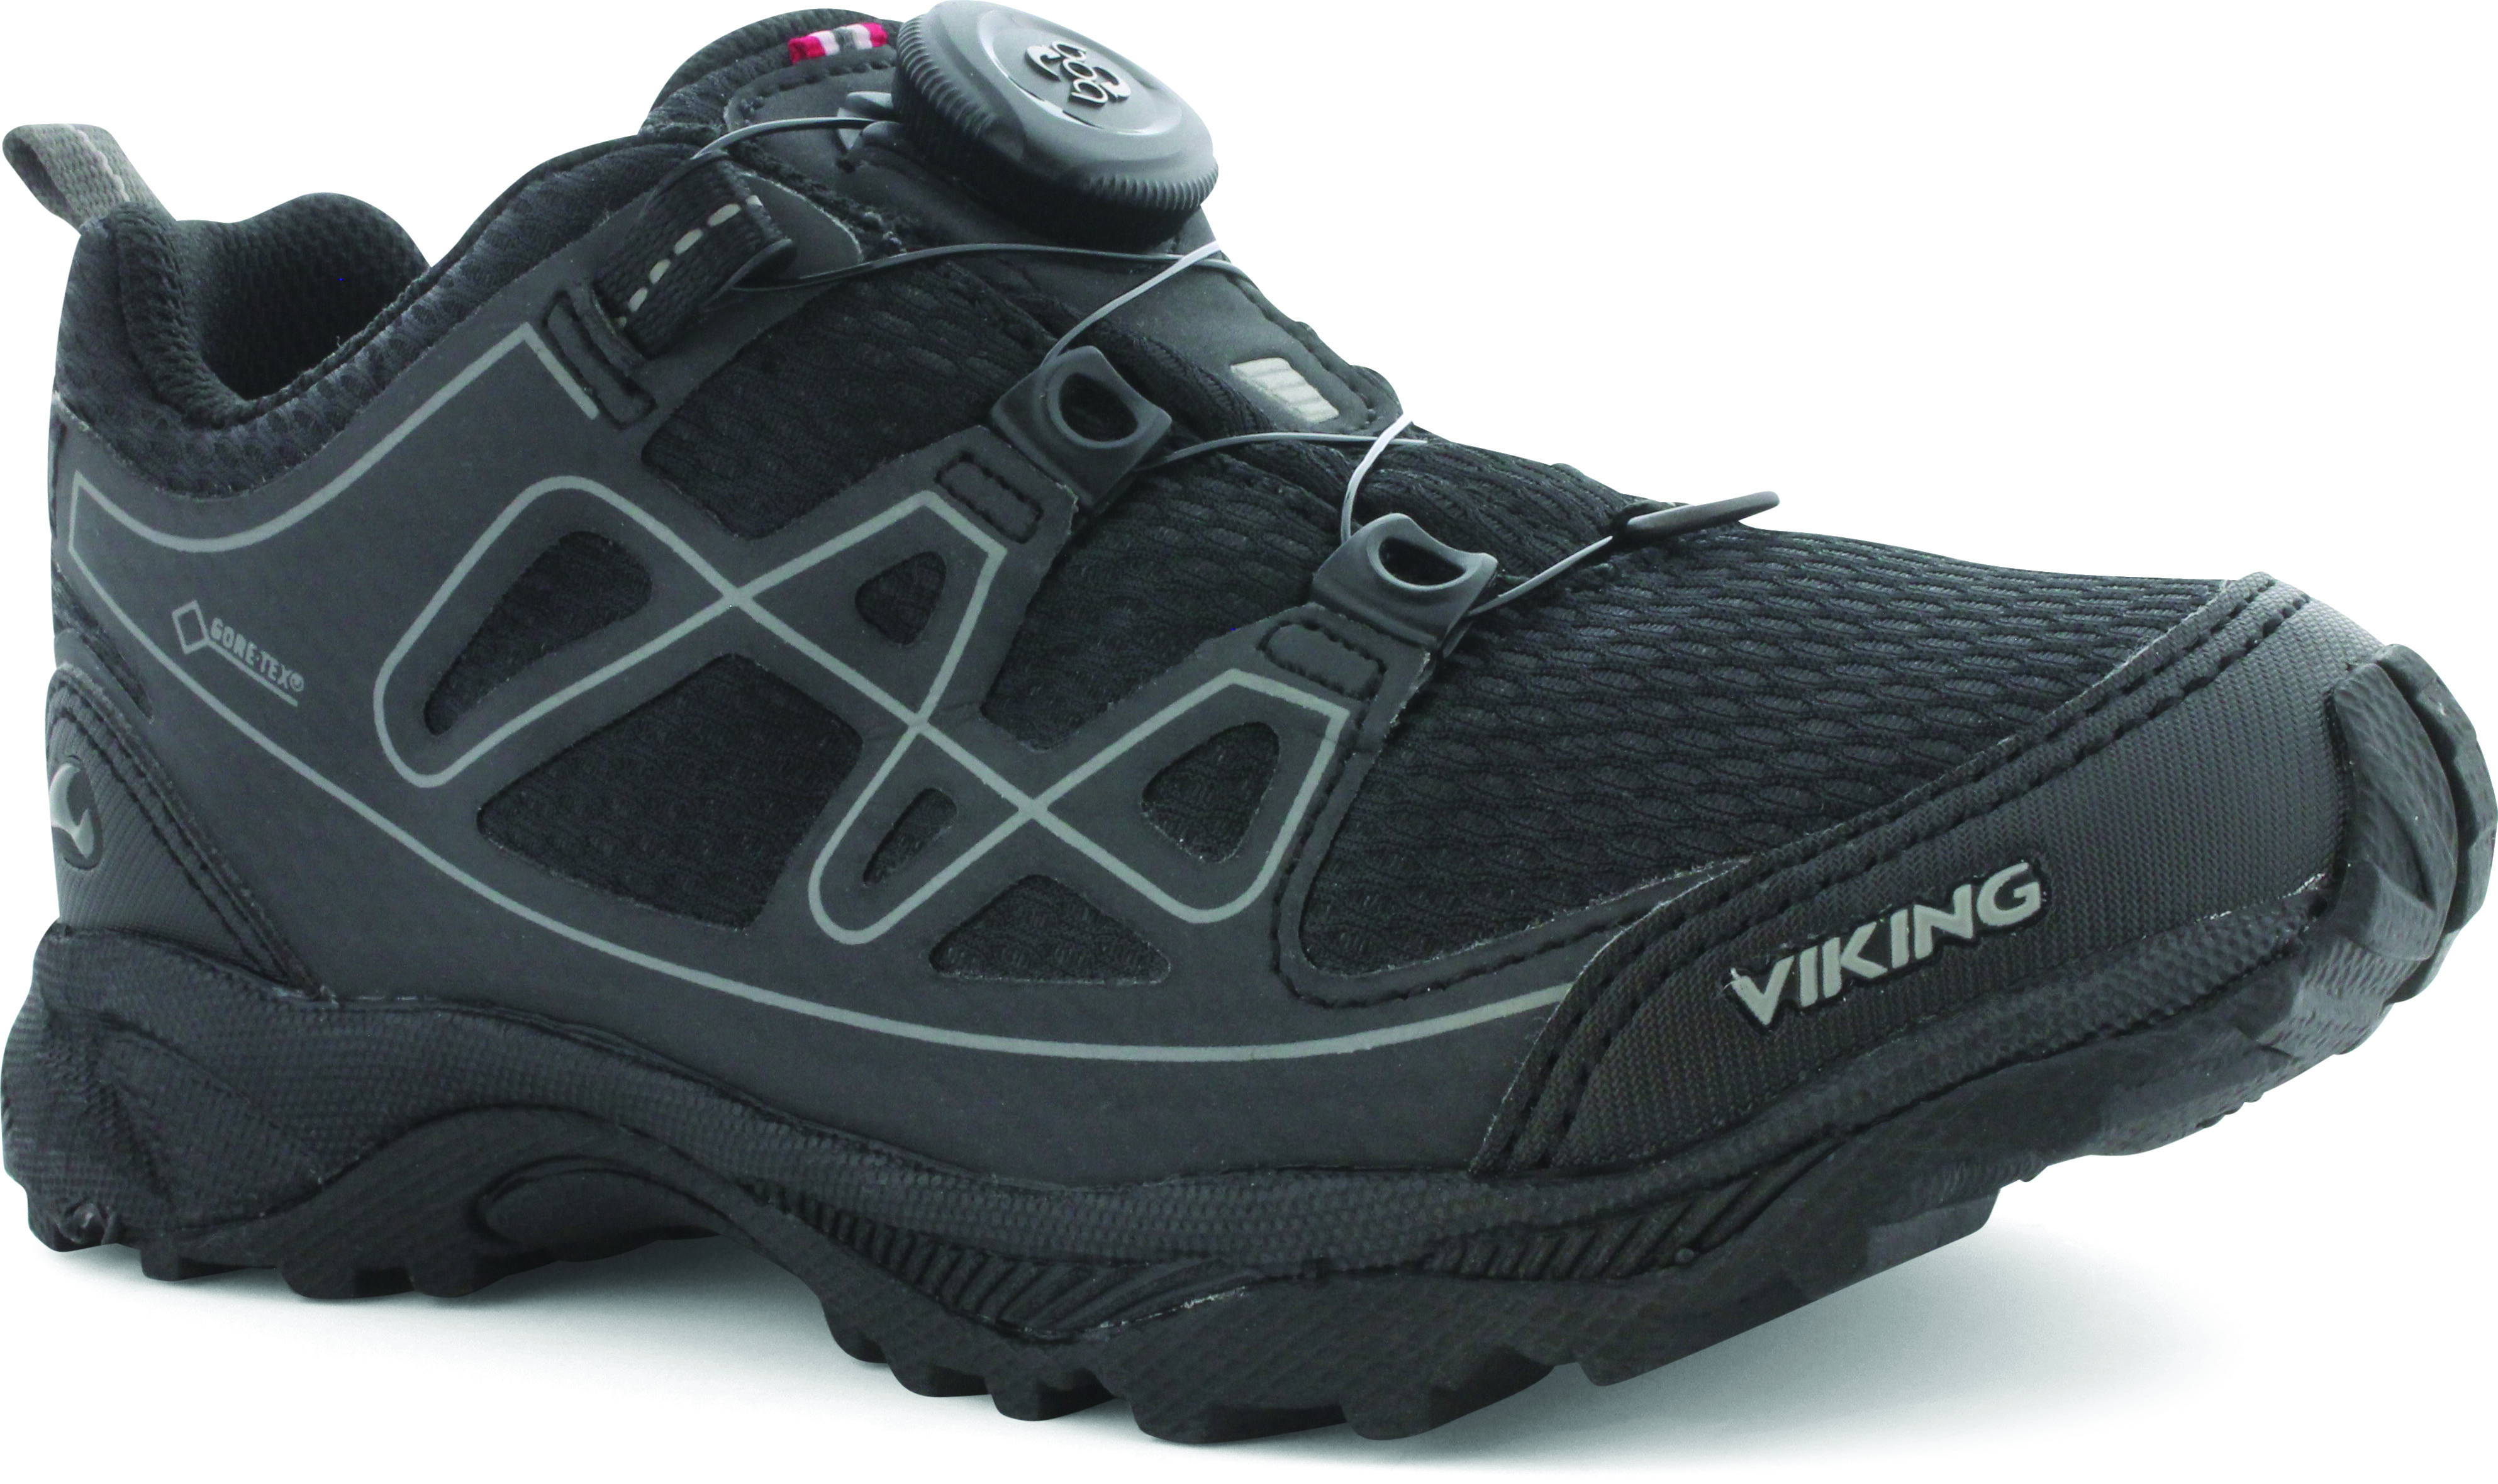 Viking s active outdoor series updated styles for for Viking outdoor